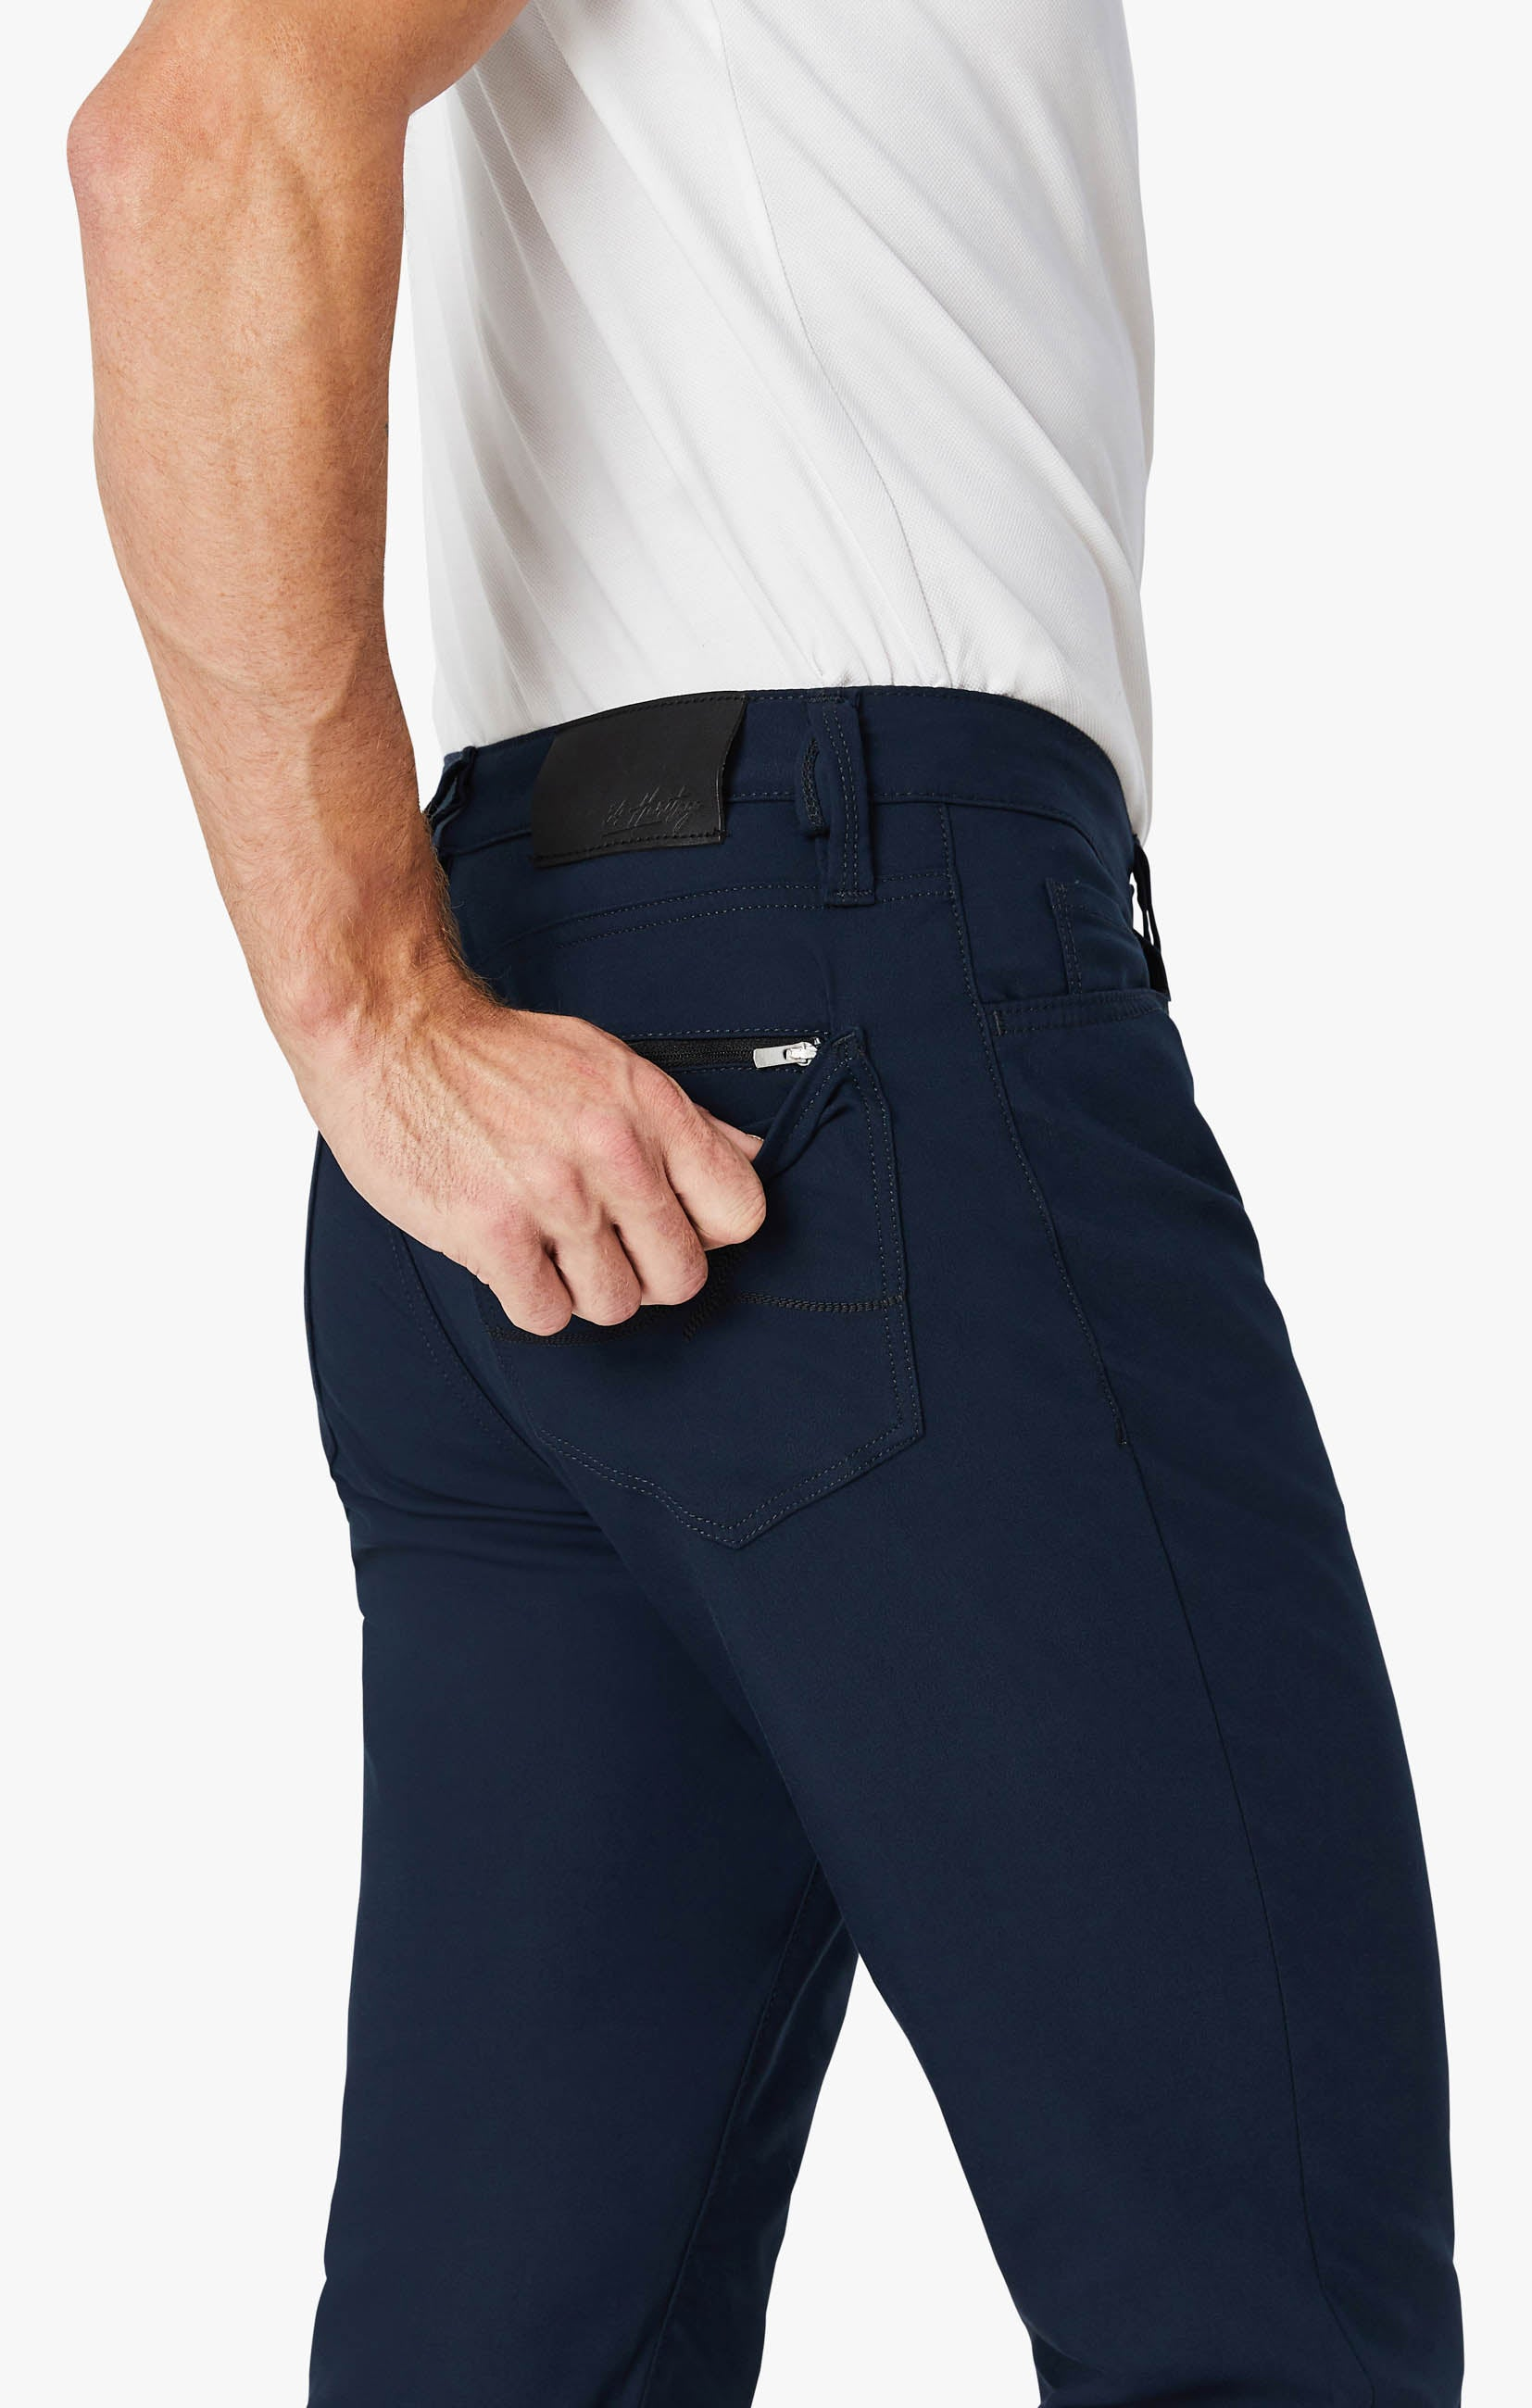 Charisma Relaxed Straight Commuter Pants In Navy Image 5